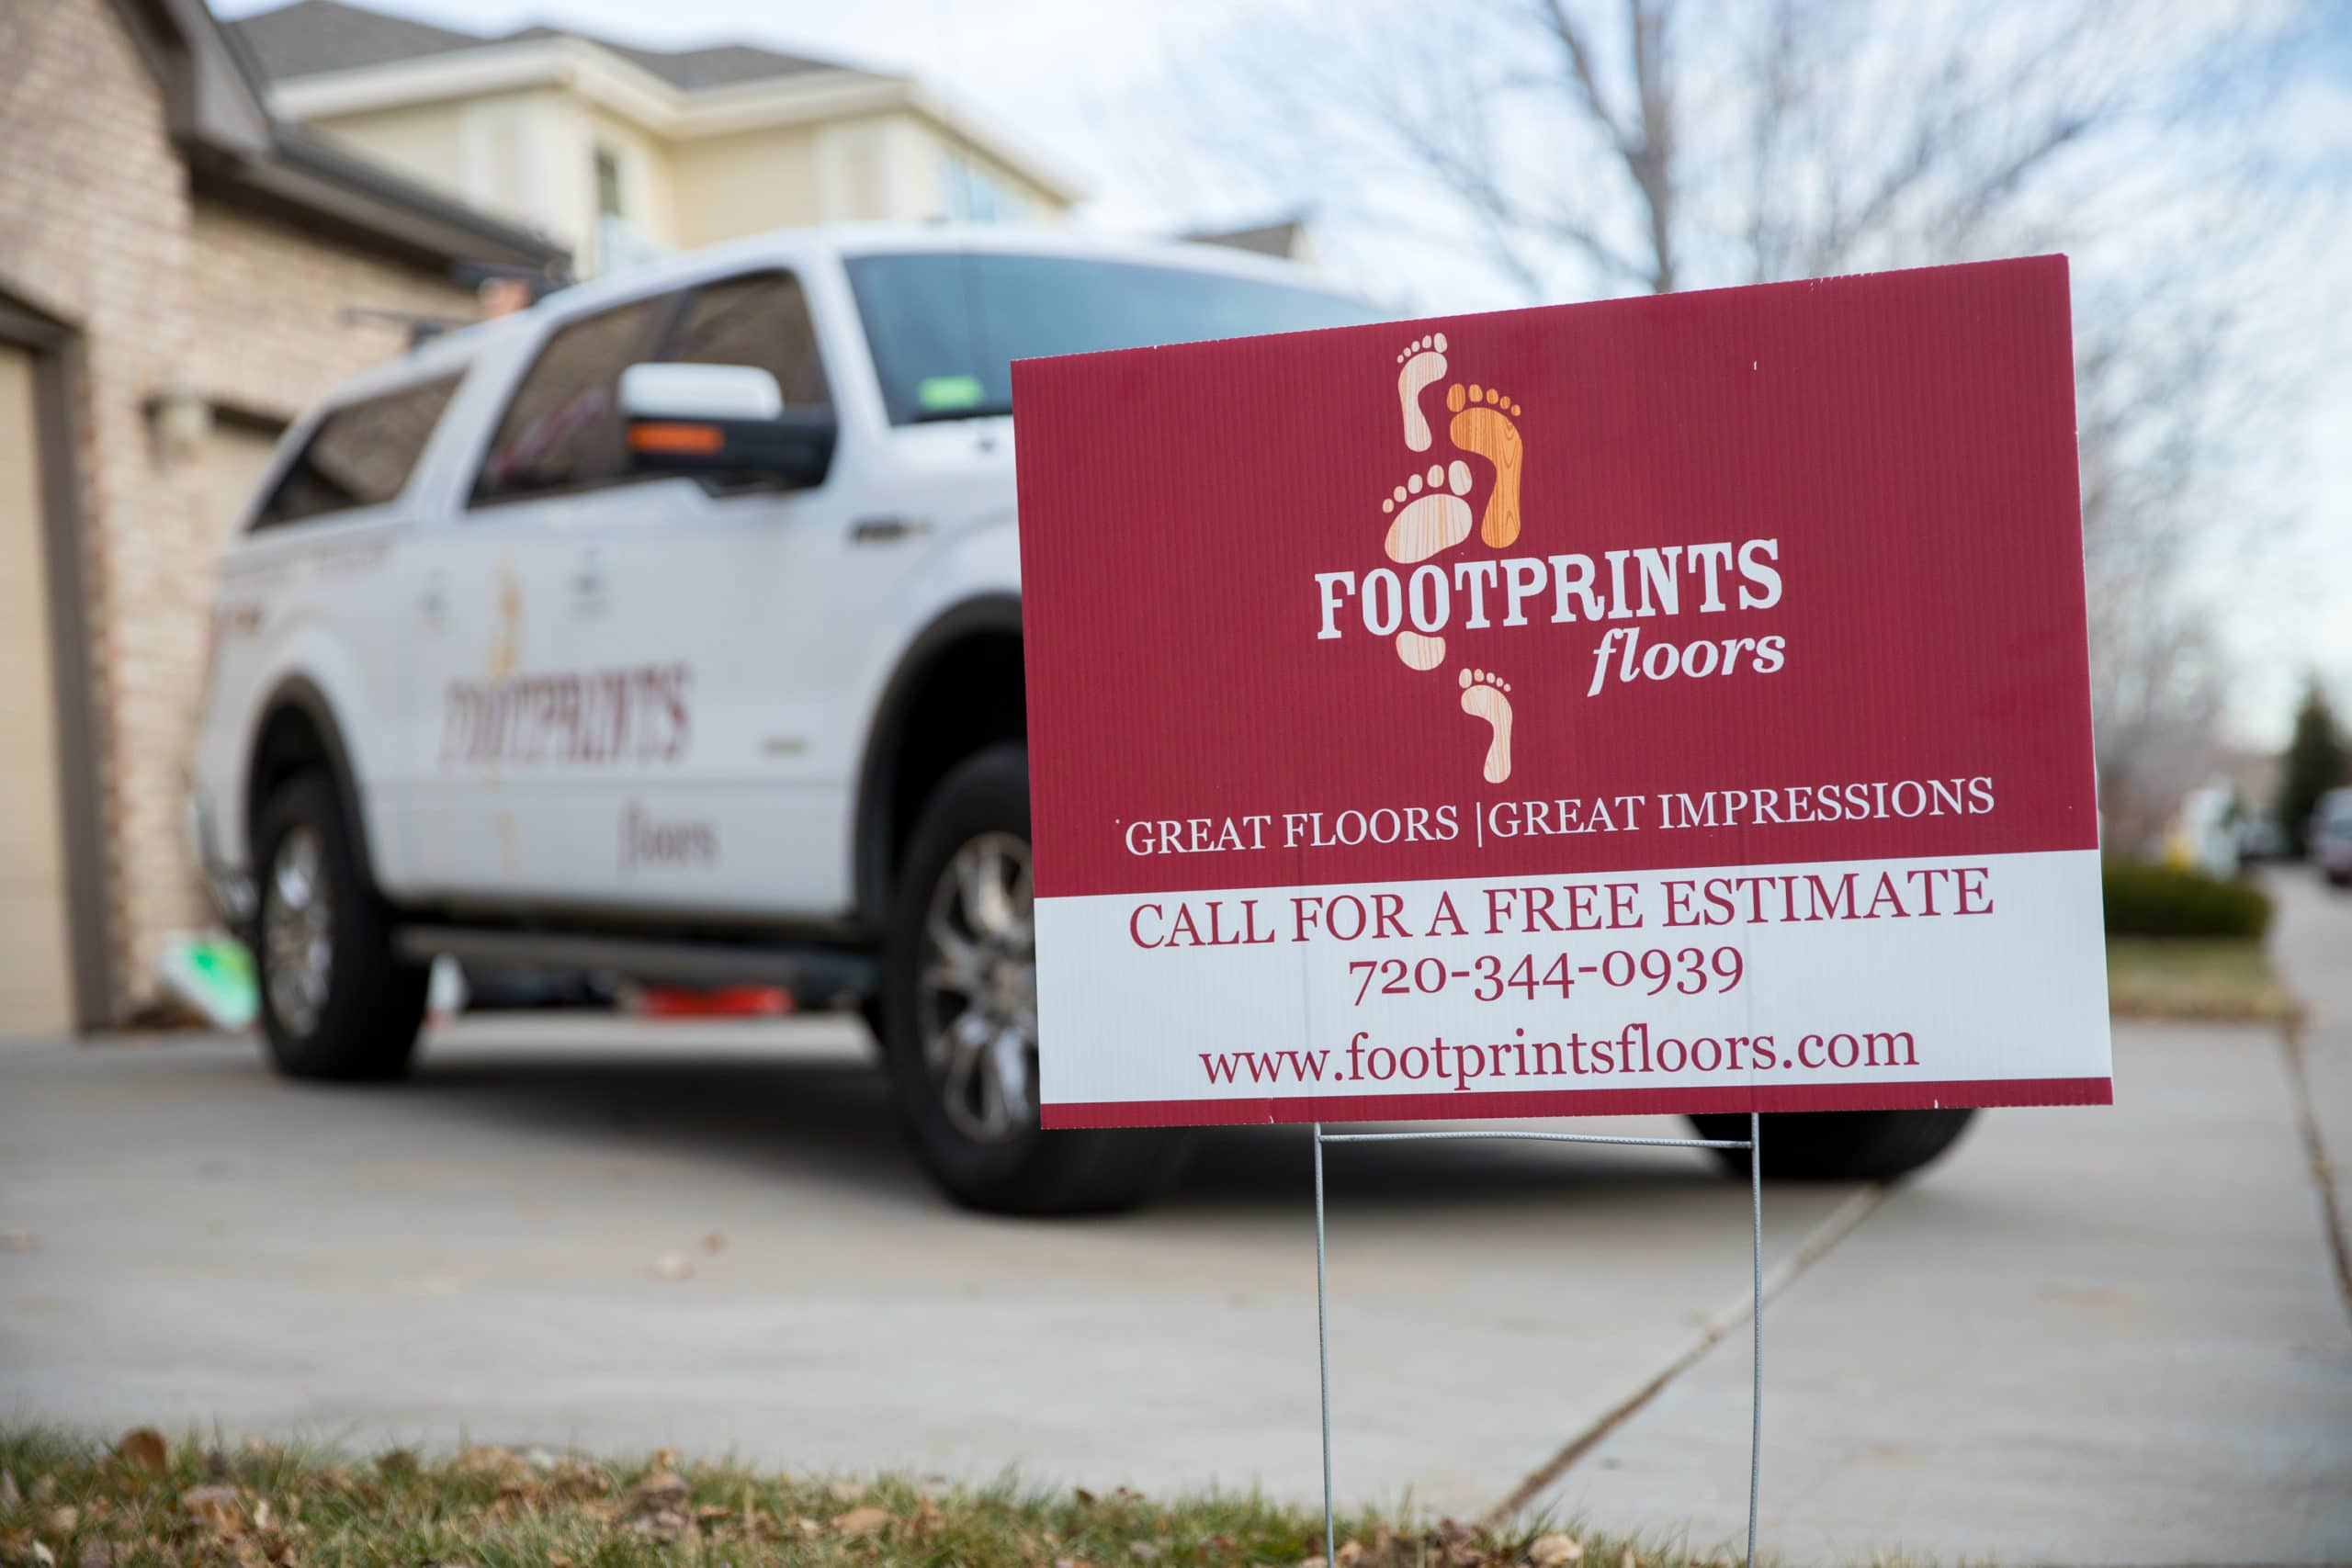 Footprints Floors sign in front yard demonstrates business growth and benefits of self-employment.